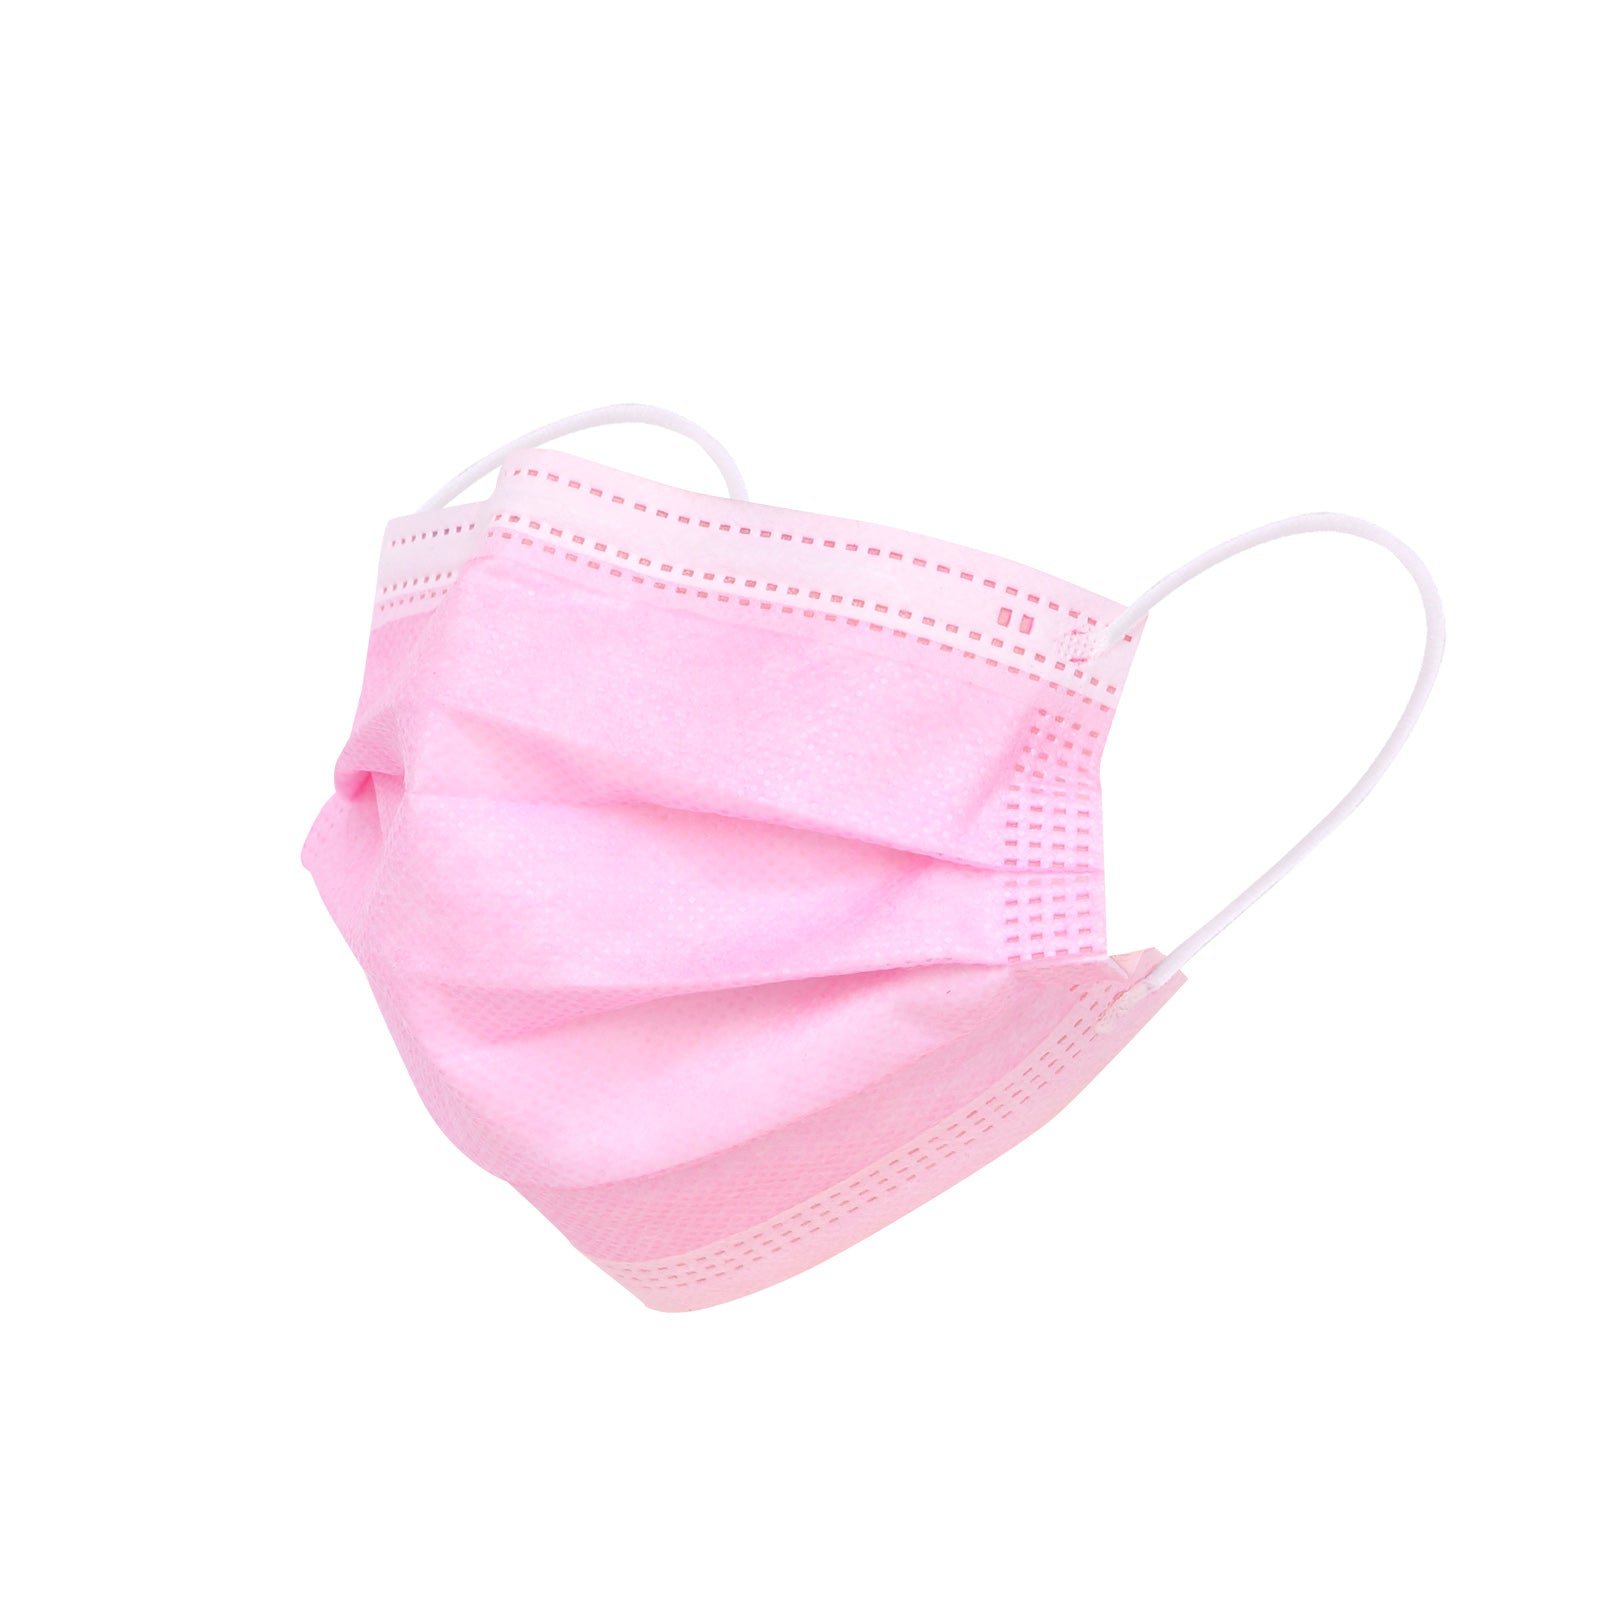 1000PCS Pink Disposable Face Masks 3 Layers  Protective Cover Masks